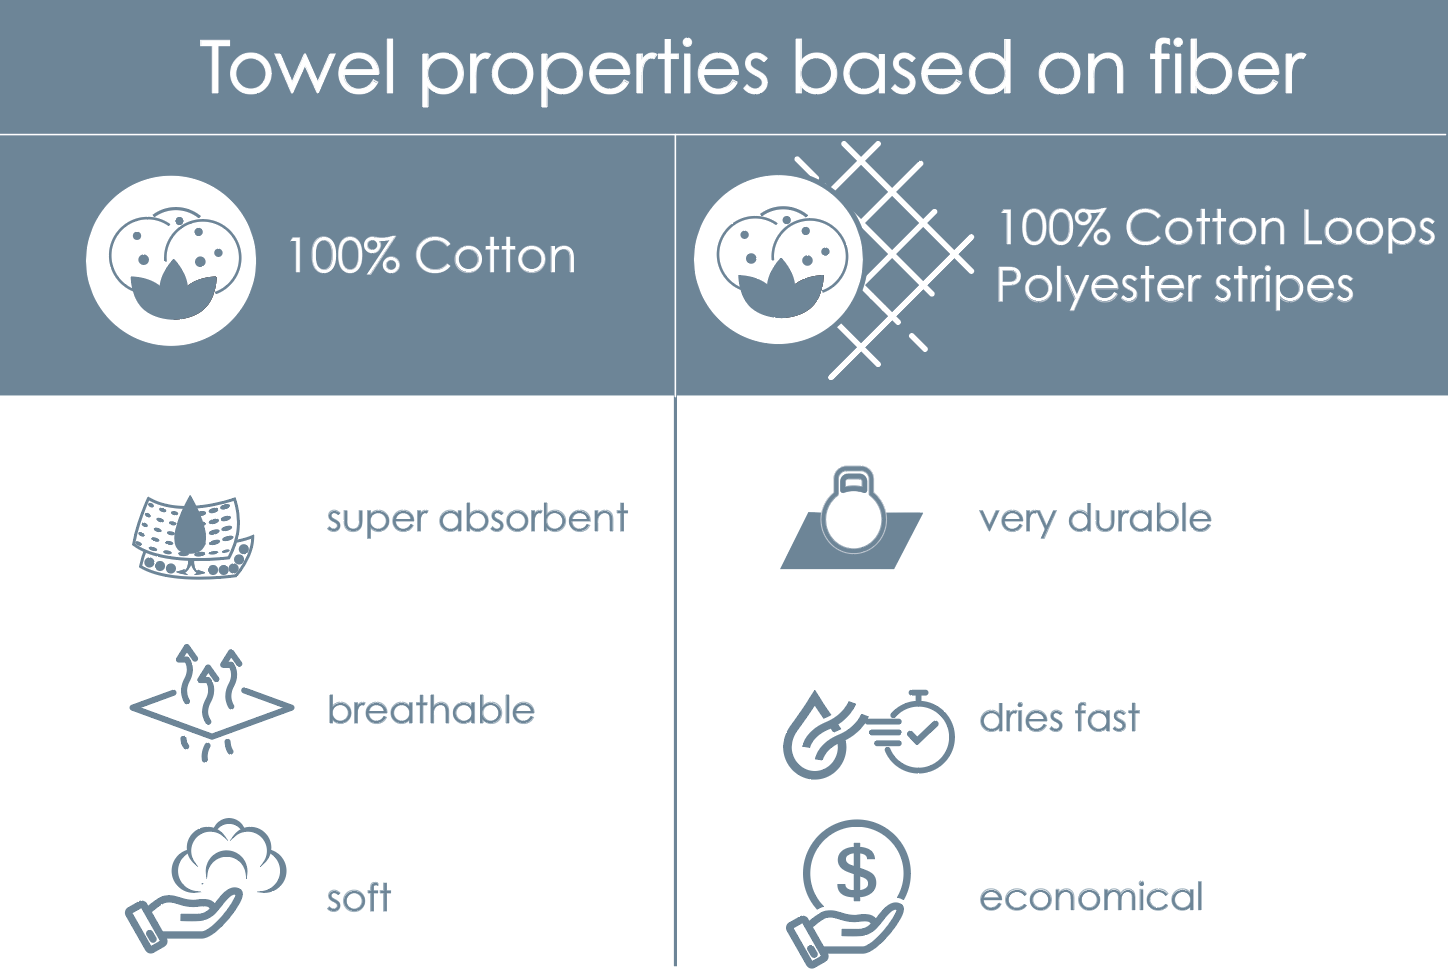 Hotel Towel have different properties and features based on fiber content. Cotton towels are very absorbent, soft and breathable, while towels with added polyester loops dry faster, are more durable and usually more economical (cost less)